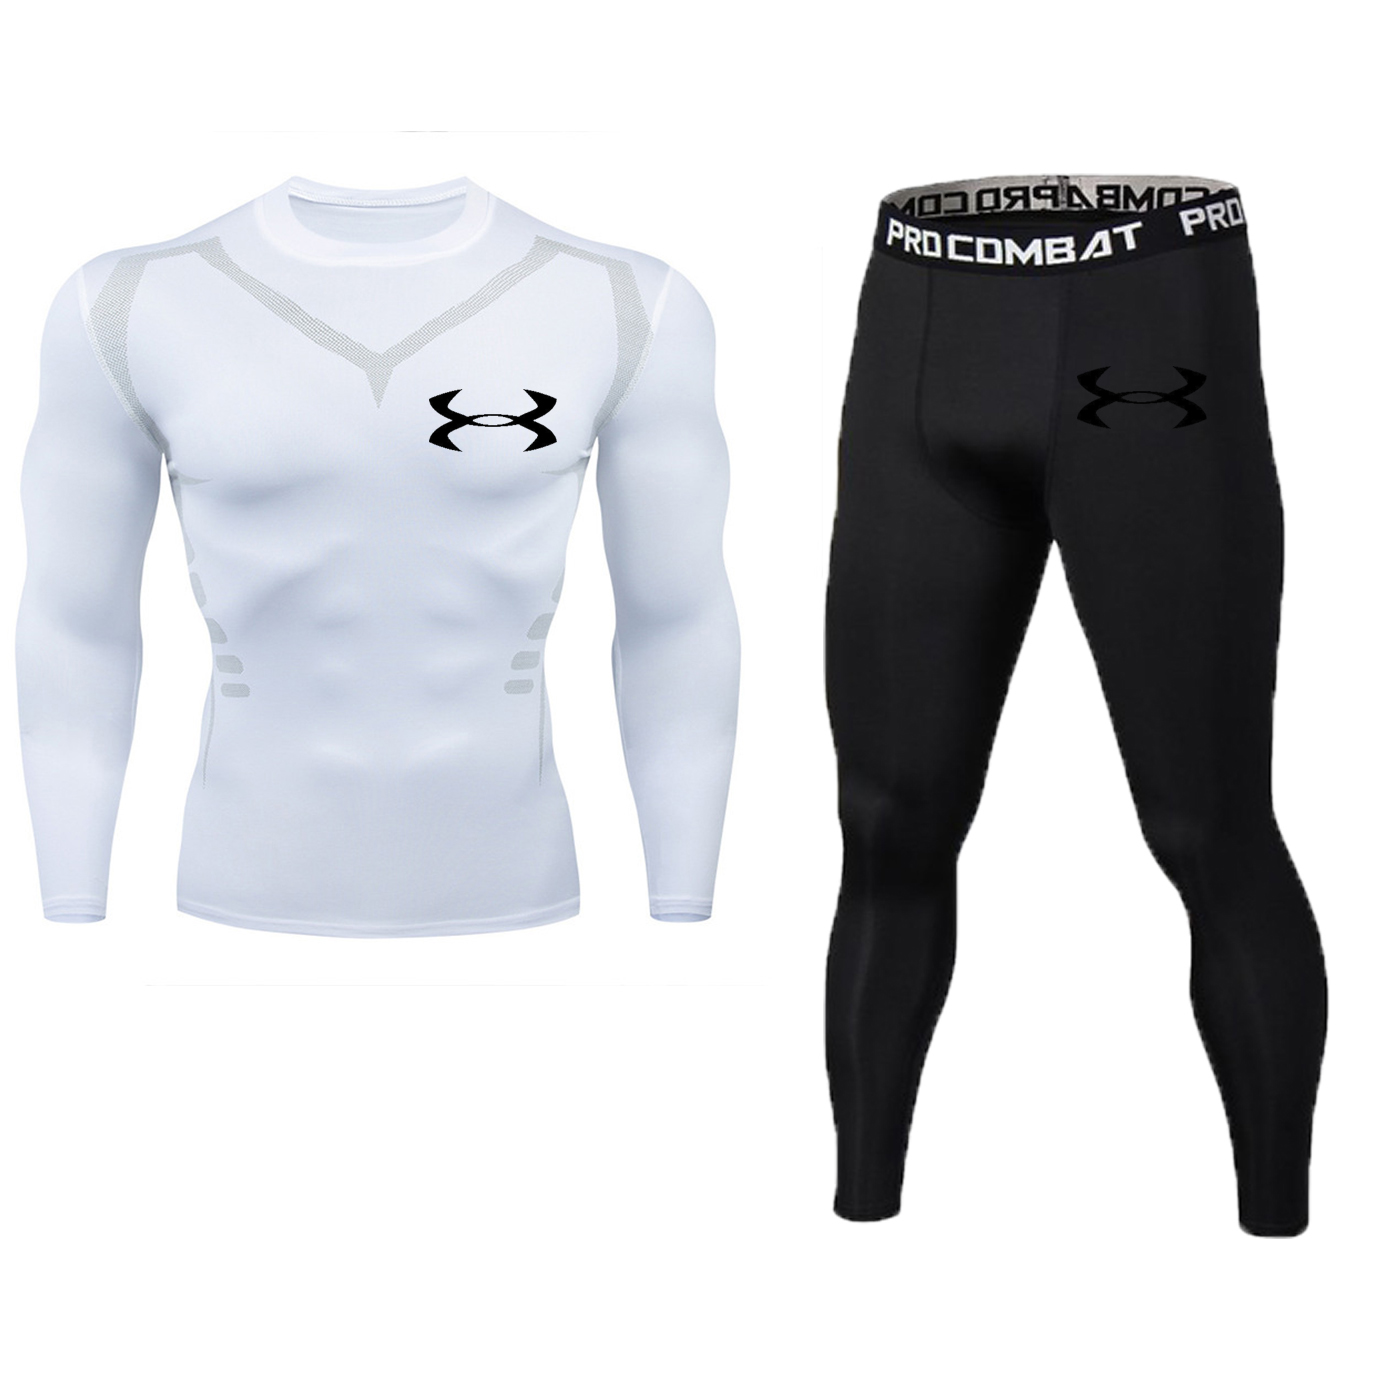 24-hour Delivery Men's Sports Running Suit Compression T-shirt + Pants Tight Long-sleeved MMA Training Clothes Gym Yoga Clothes